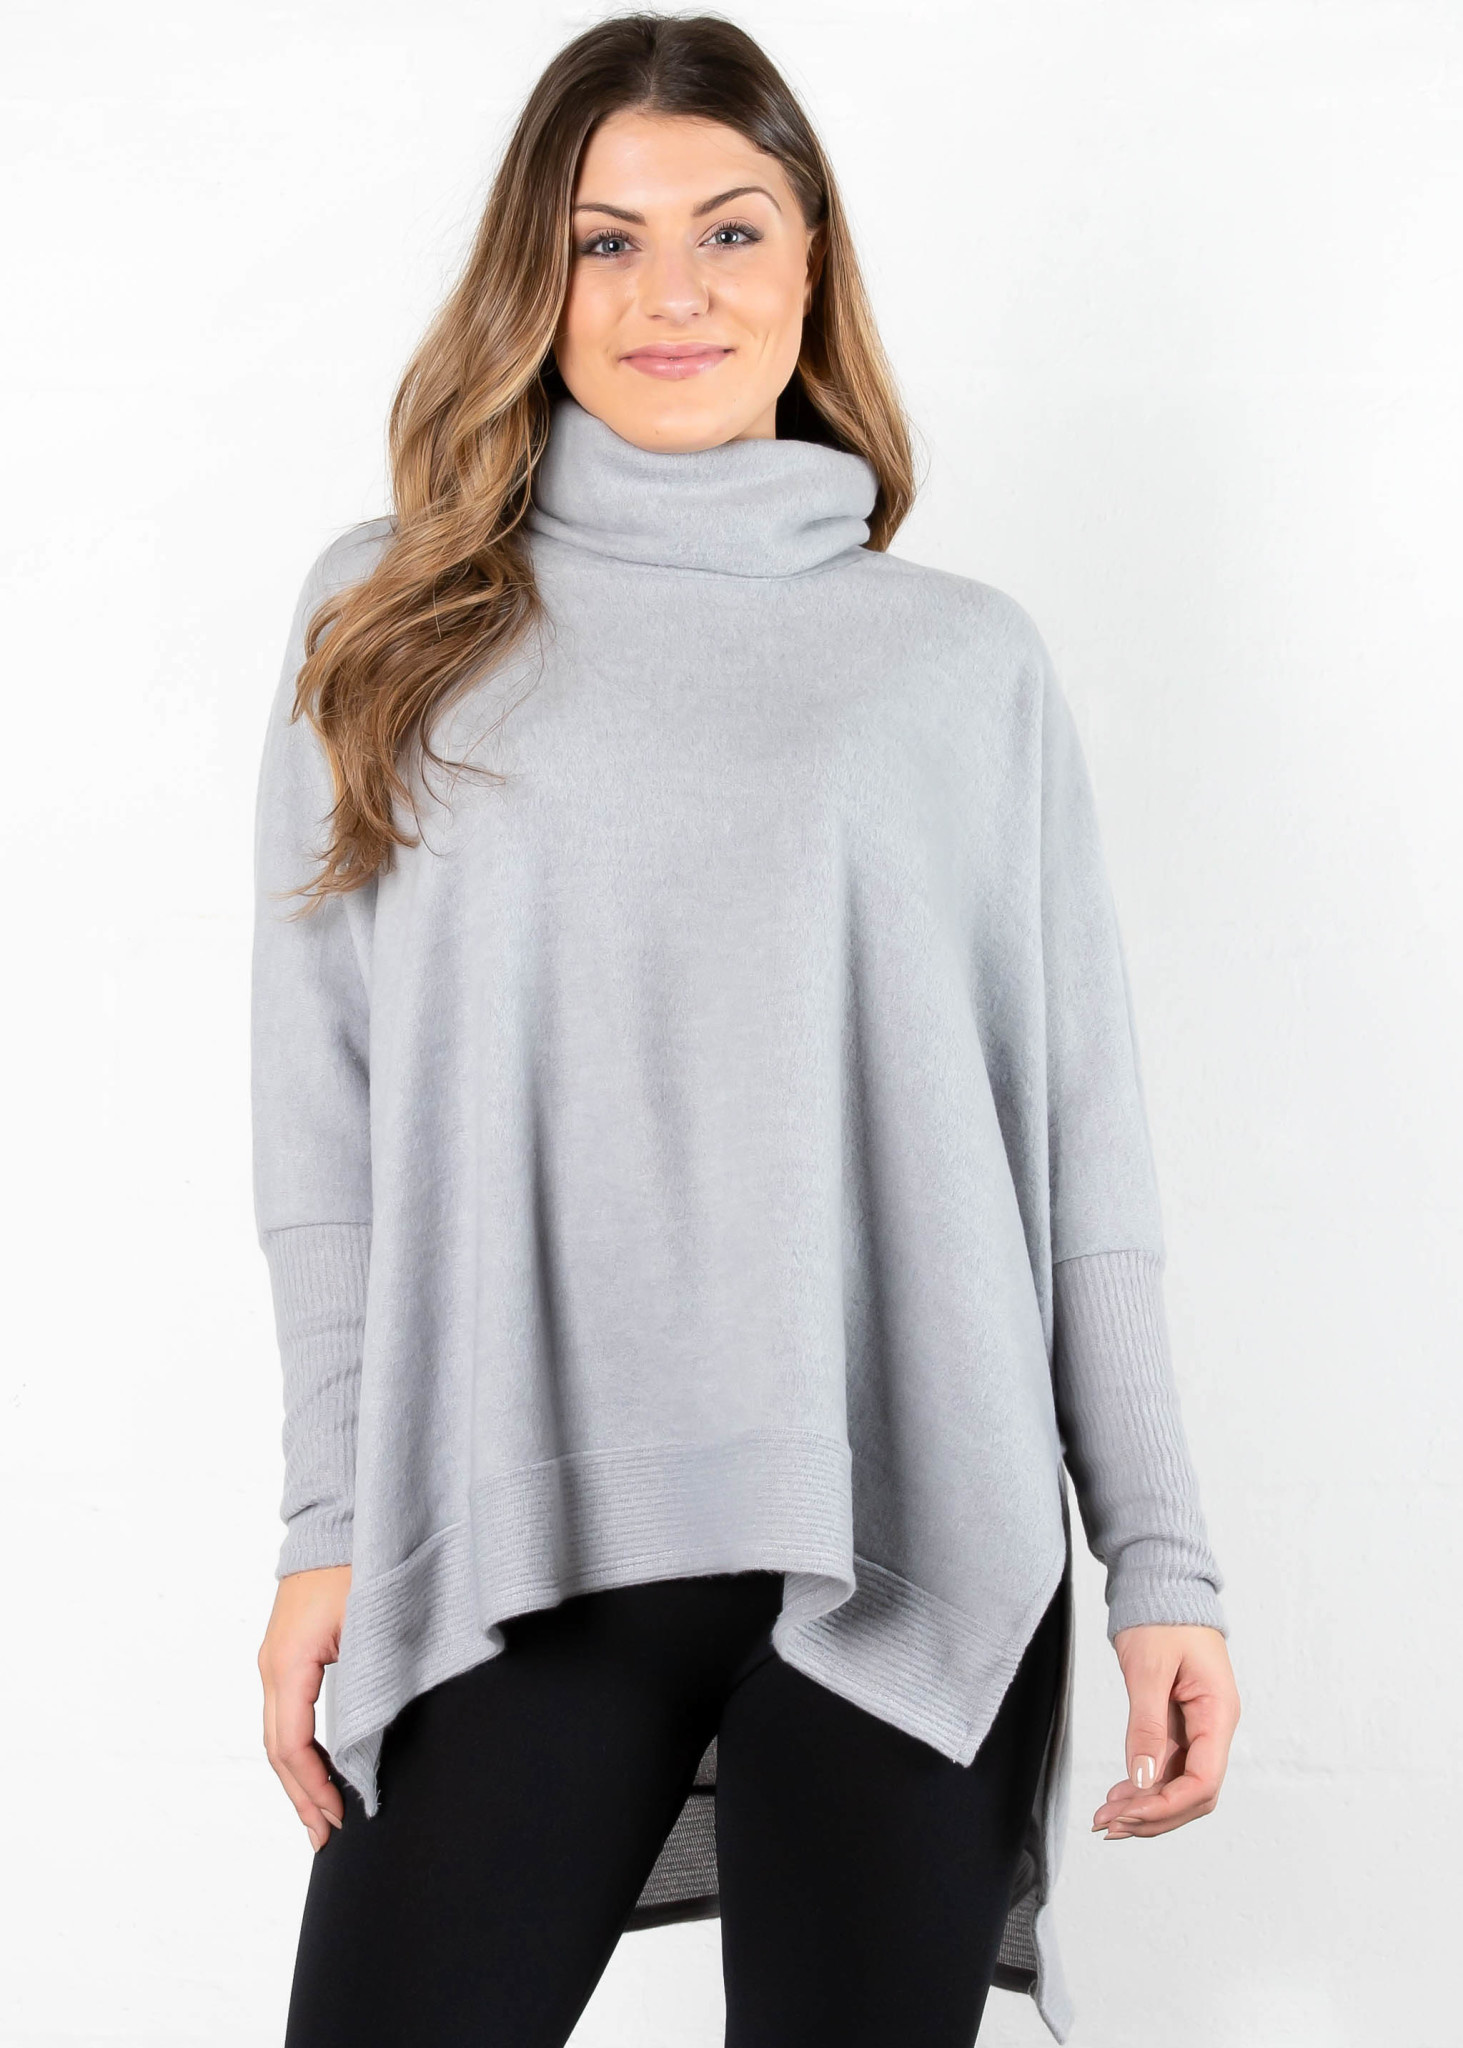 EASY GOING COWL NECK SWEATER